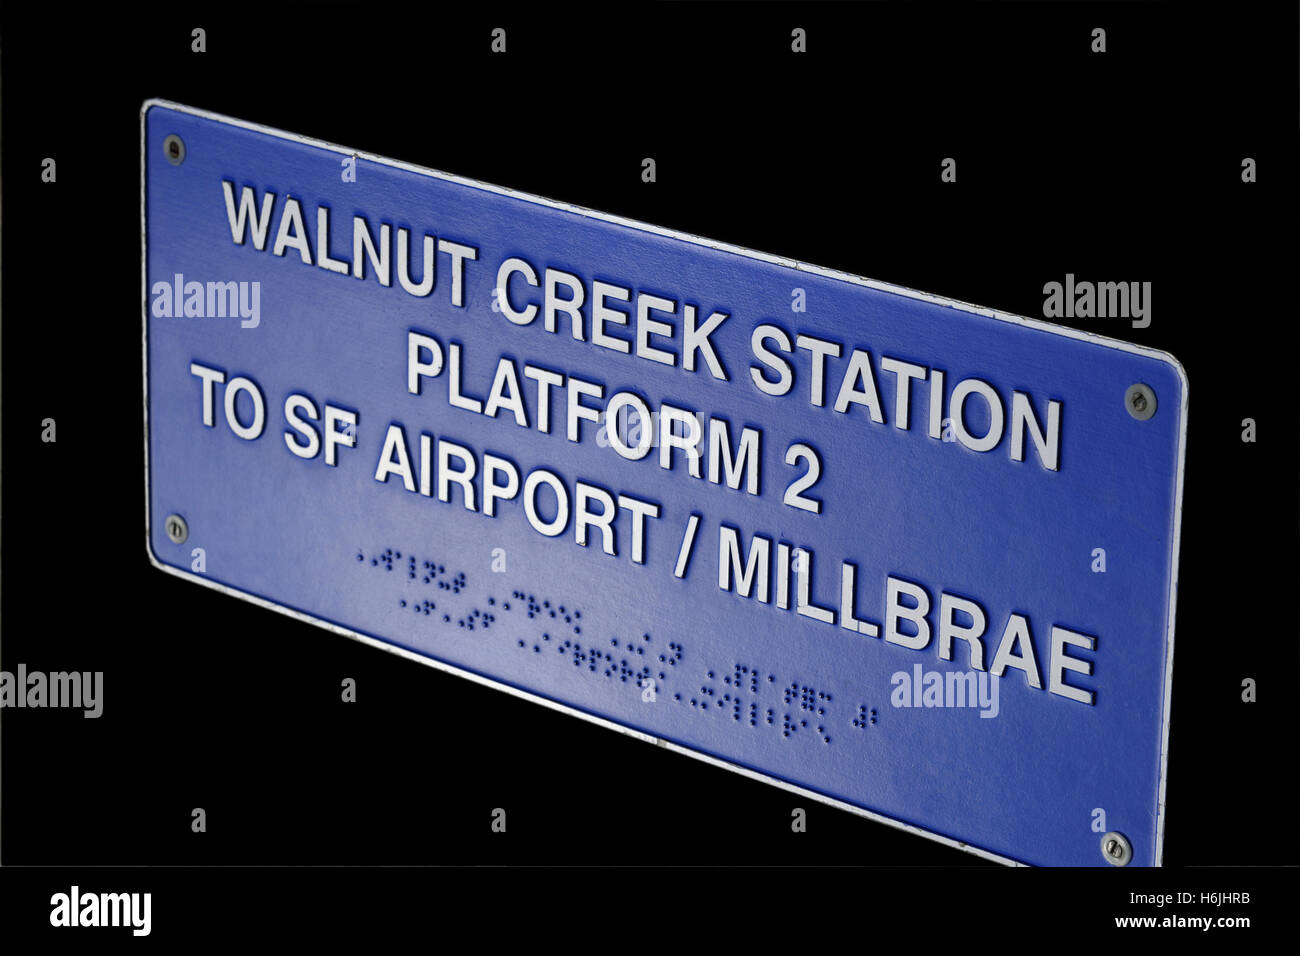 Metal plaque sign on Walnut Creek 'Bart' station with platform information duplicated in Braille for visually - Stock Image